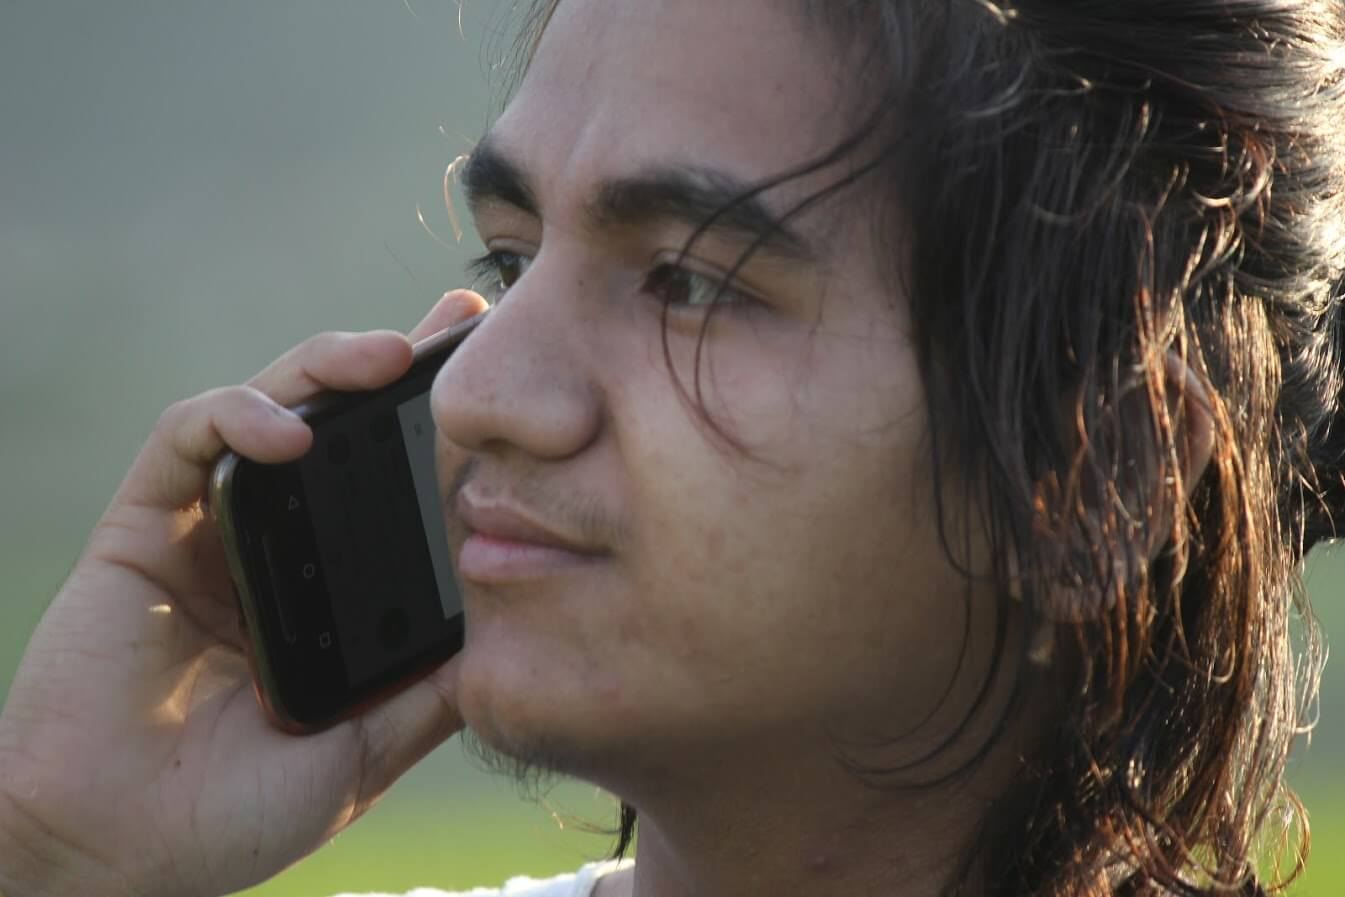 Jeevan Dhakal - And I was unknown about the pic - Kritipur, Kathmandu